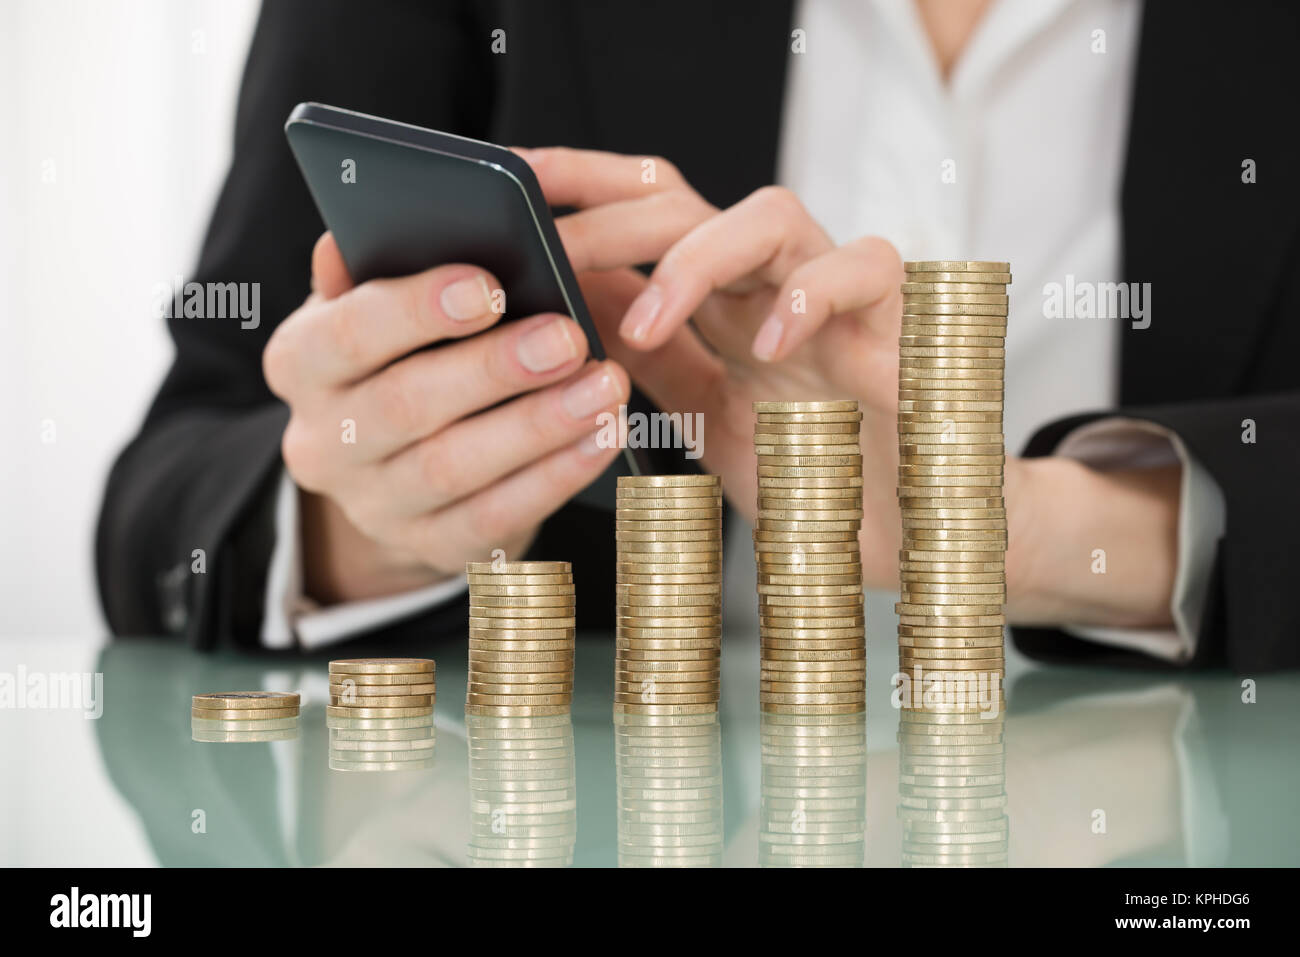 Businesswoman Using Smartphone With Stacked Coins On Desk - Stock Image